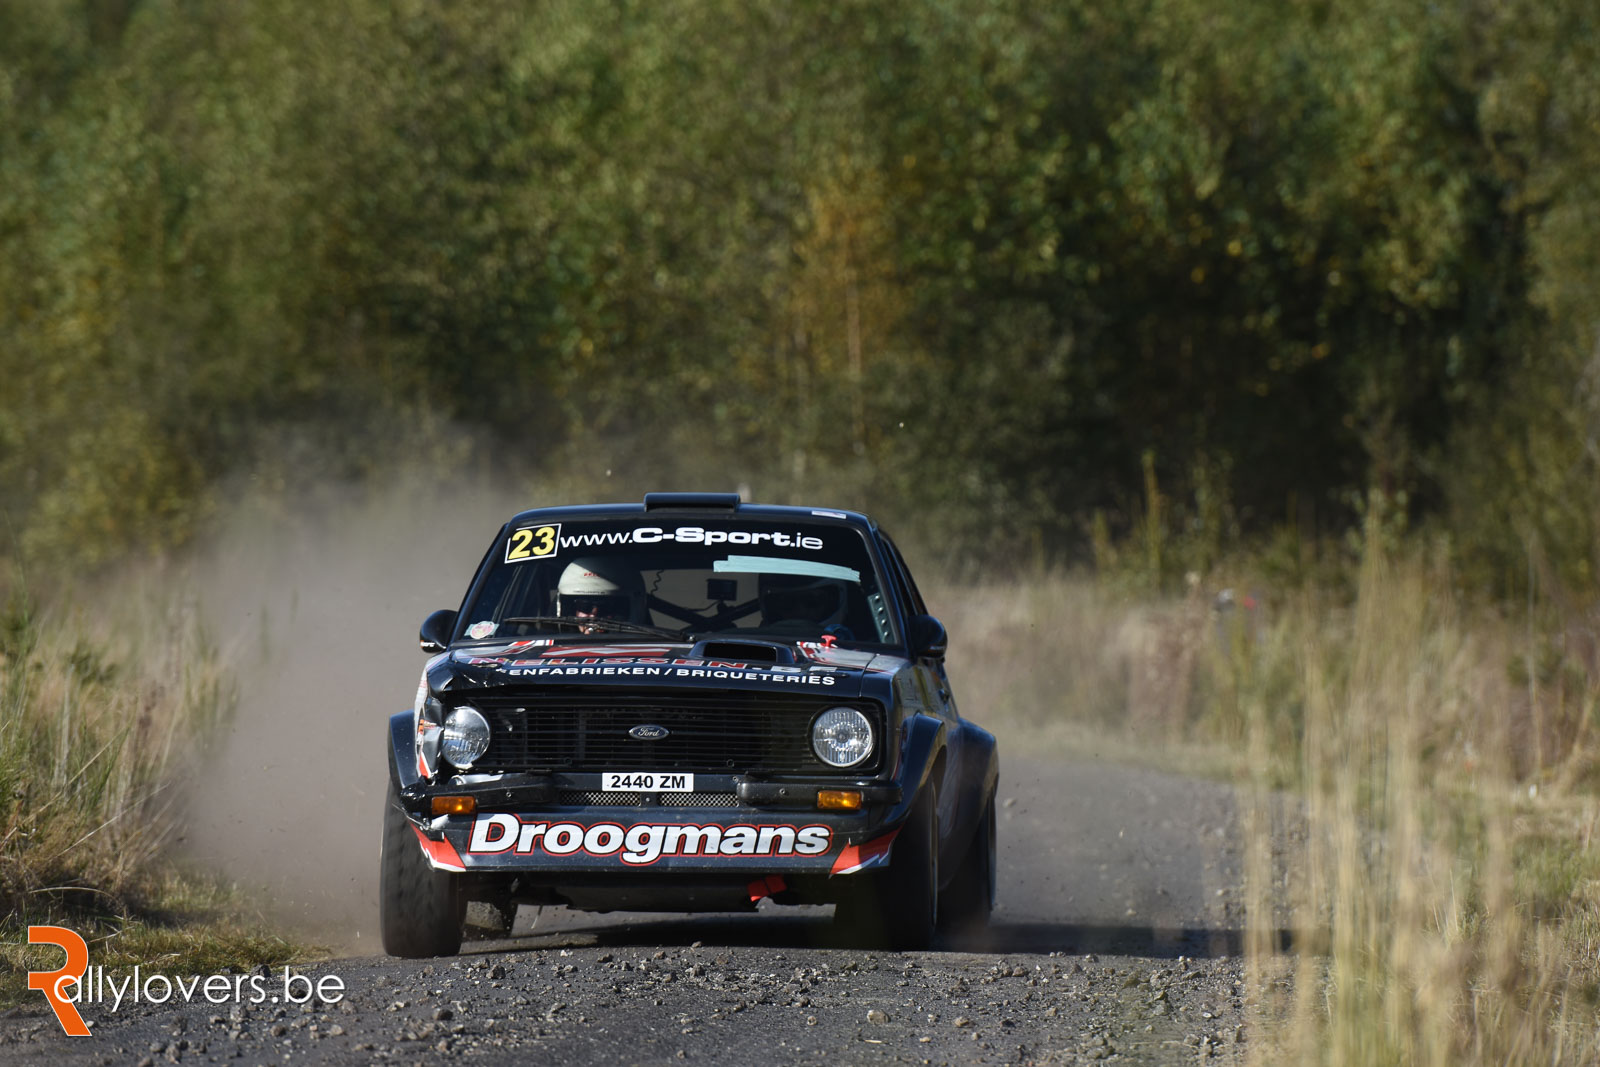 Robert Droogmans in de Rallye de Wallonie met Escort Millington